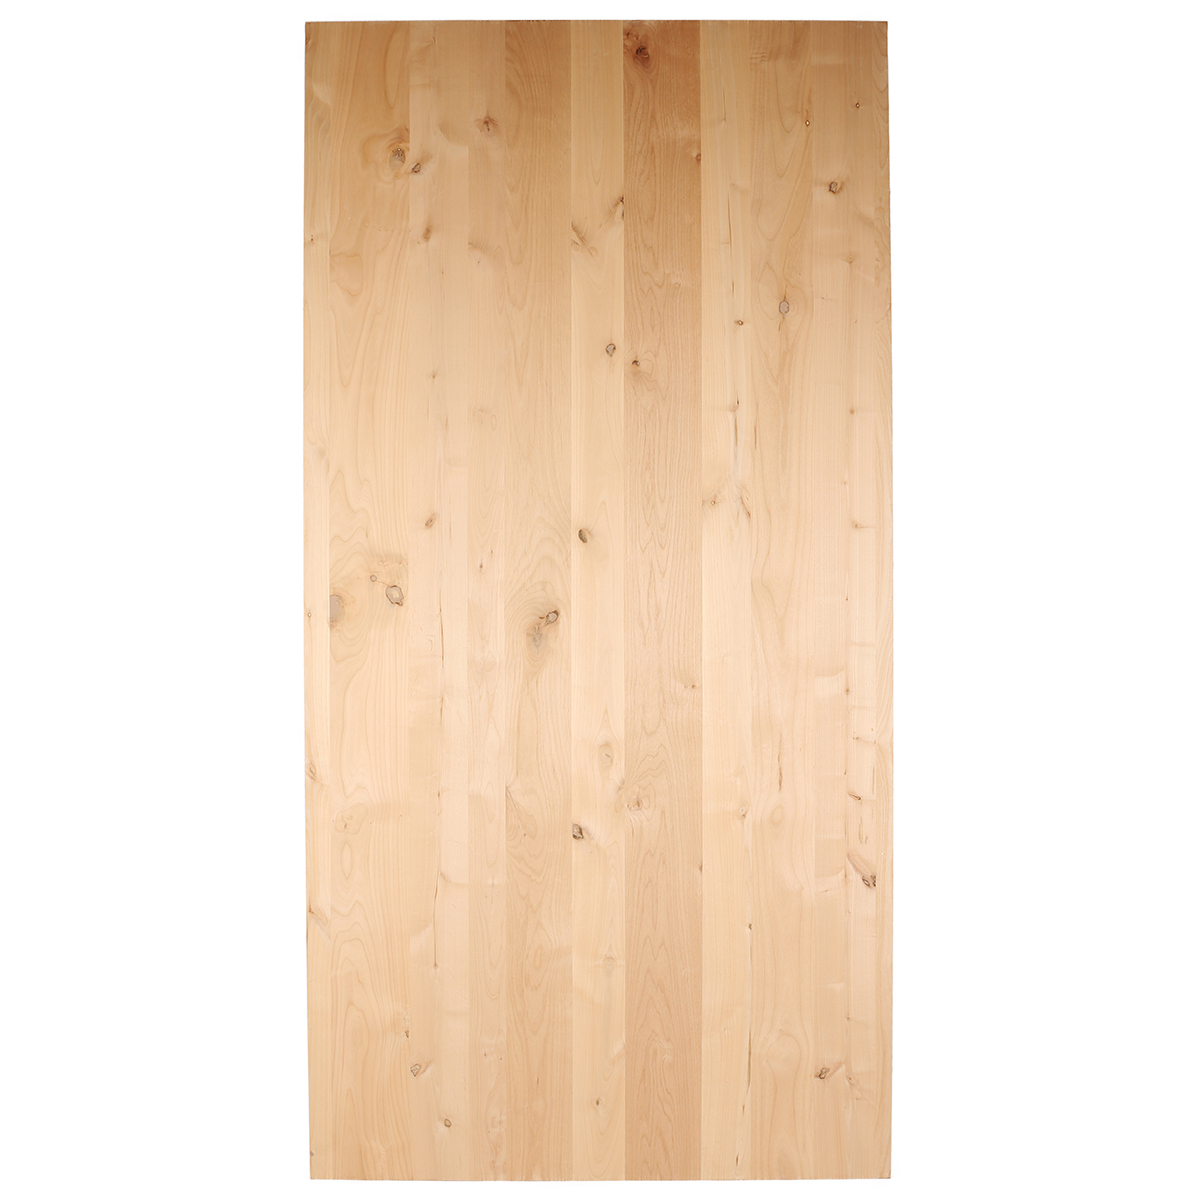 Quot knotty alder x plywood g s made in usa